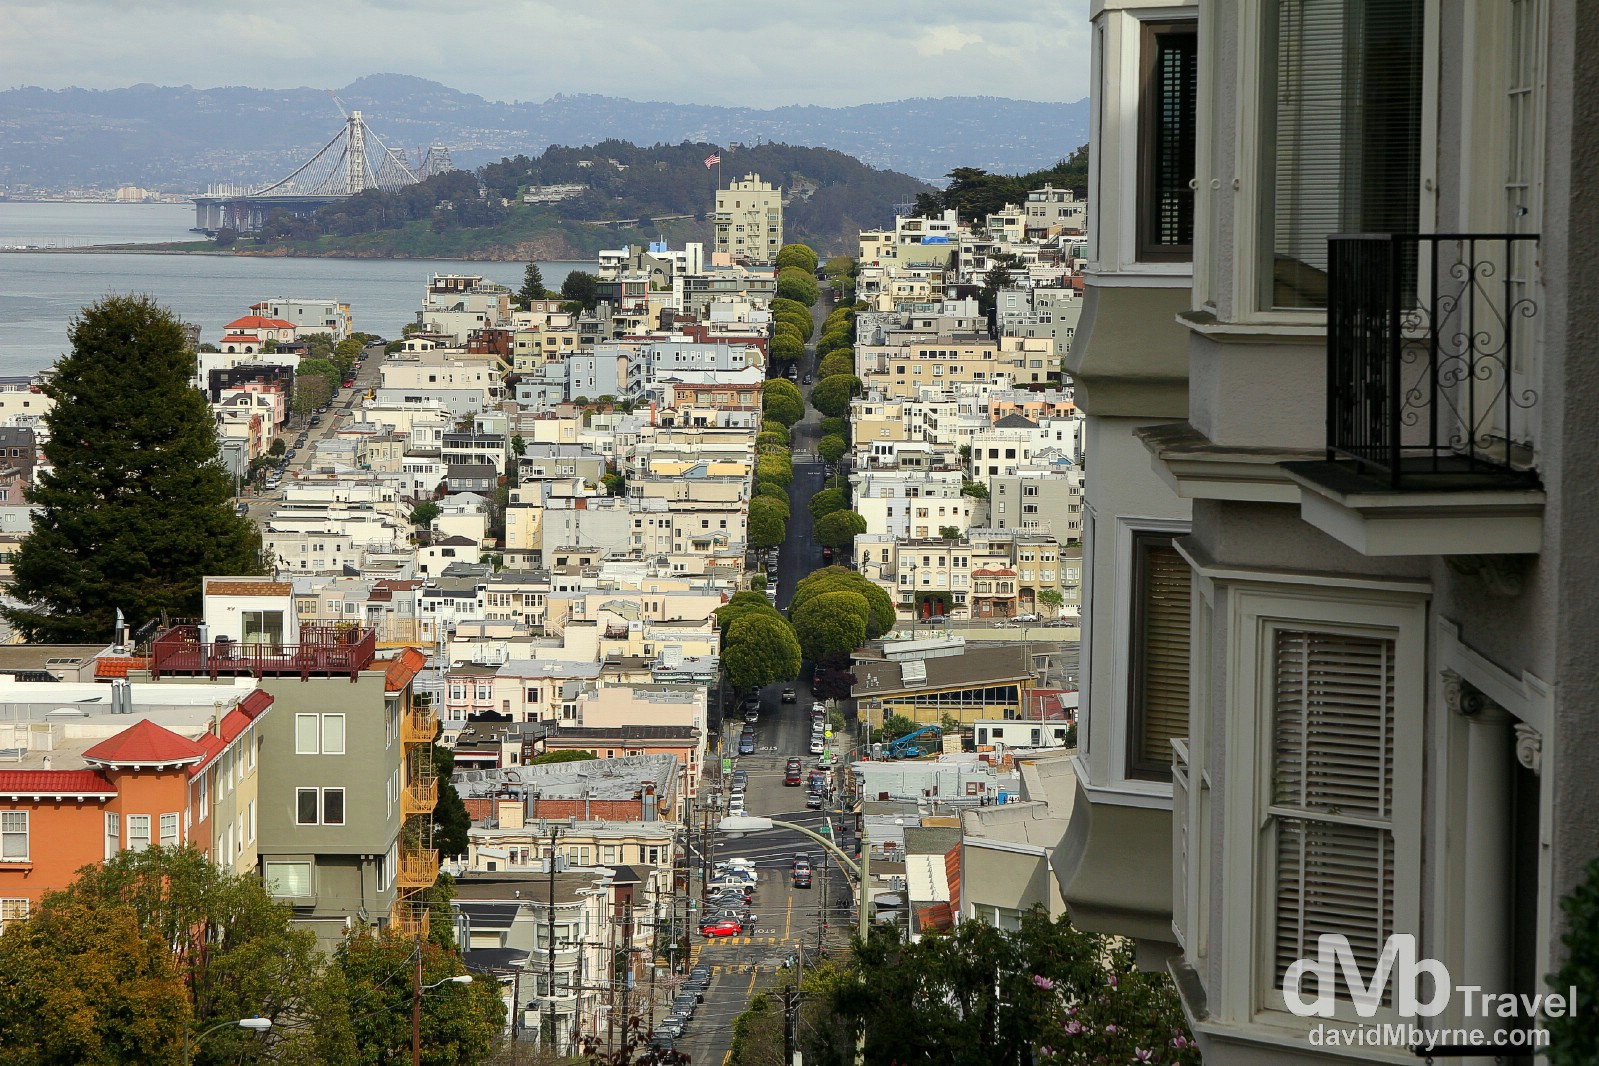 The view from Lombard Street, San Francisco, California, USA. March 31st 2013.